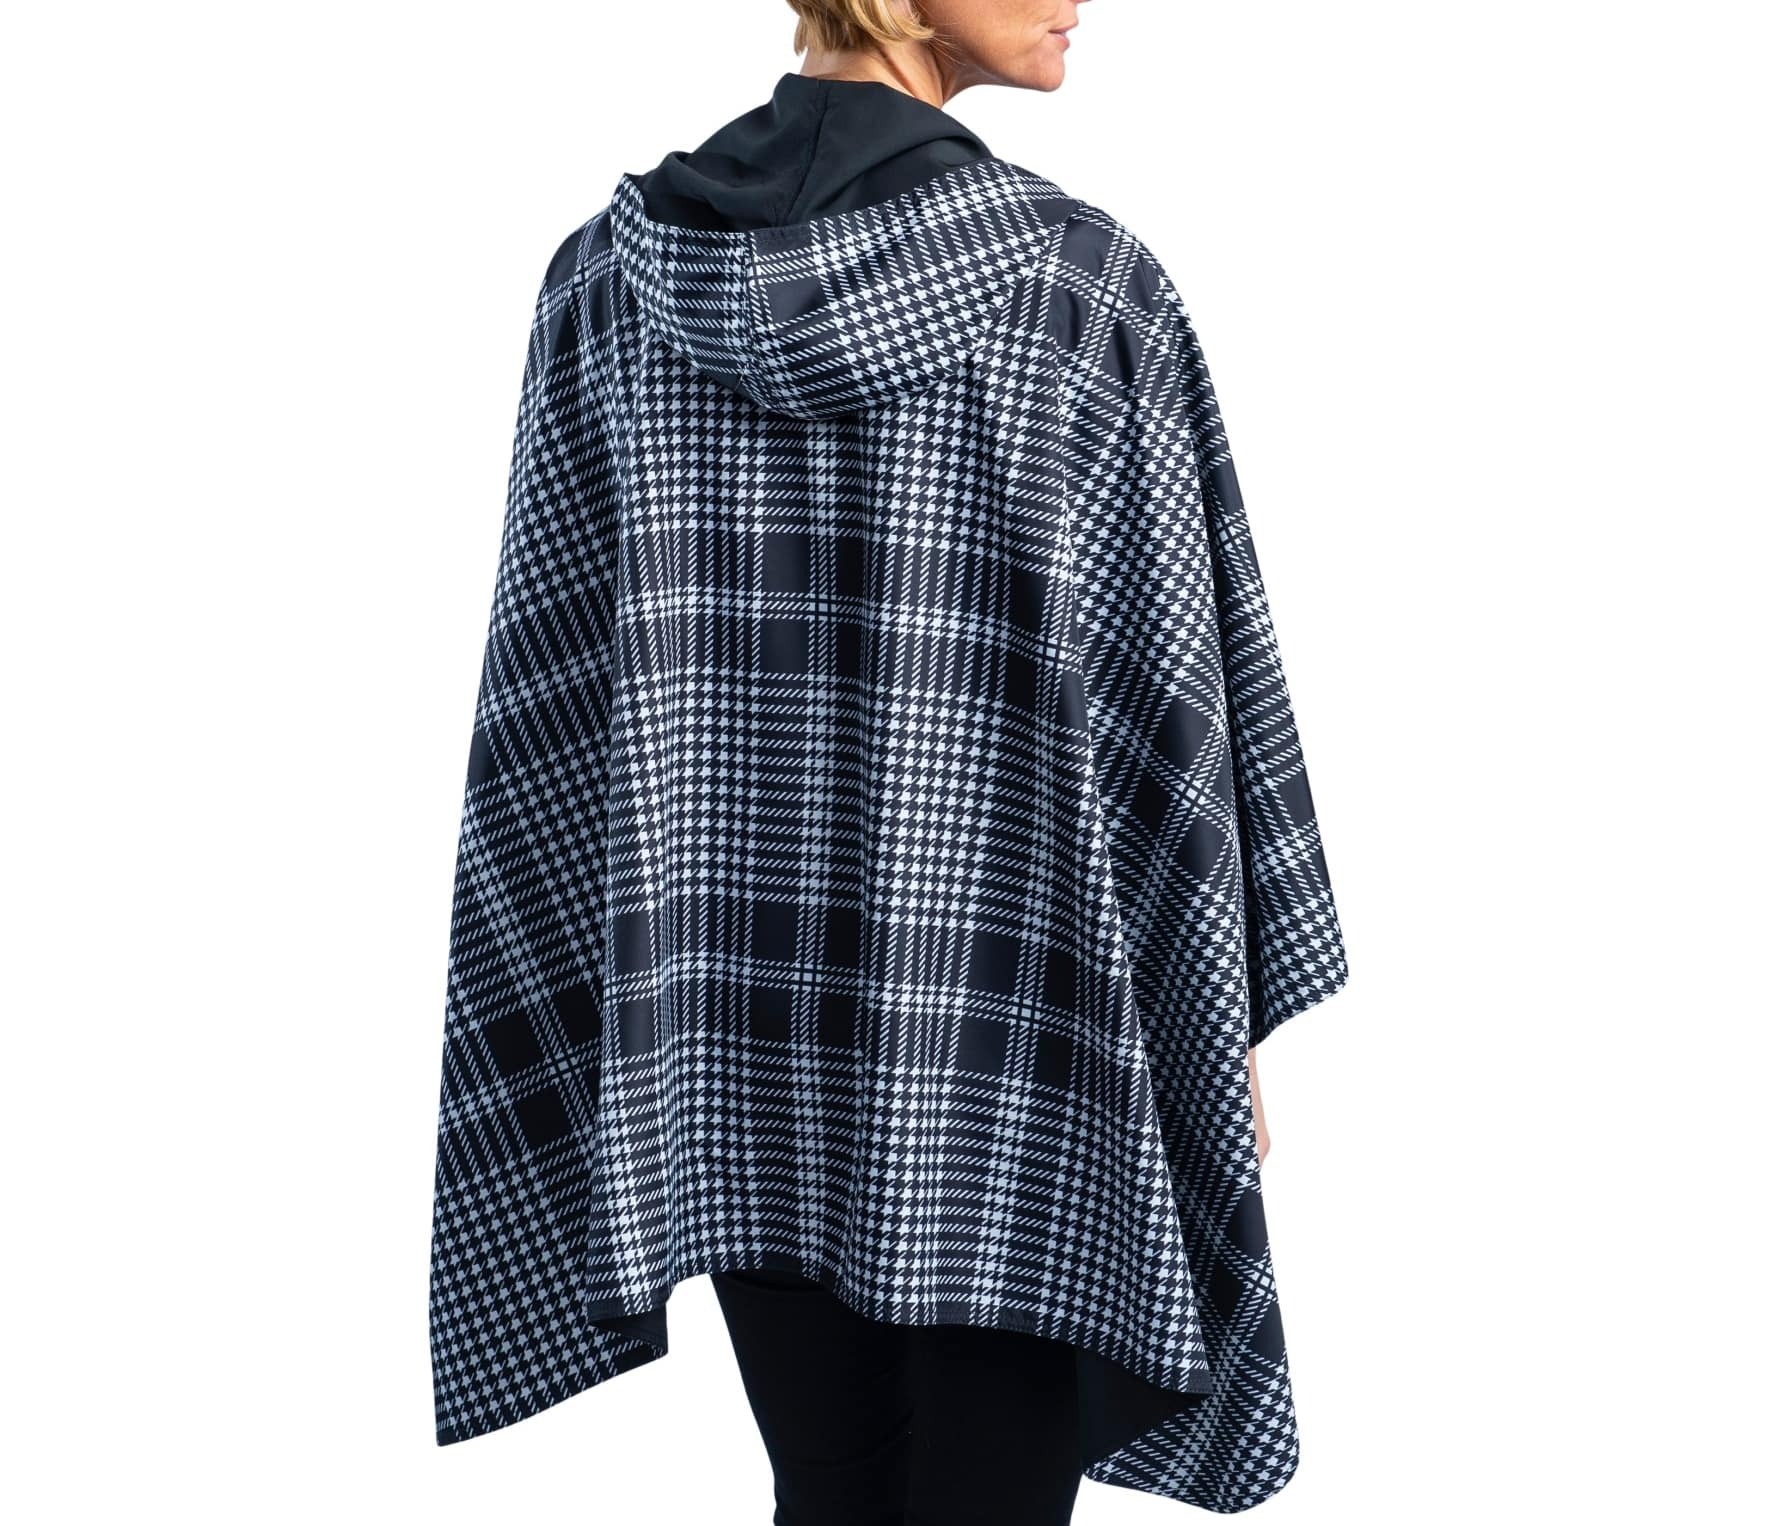 Women wearing a Black & White Houndstooth Plaid RainCaper travel cape with the Black side out, revealing the White Houndstooth Plaid print at the lapels and cuffs